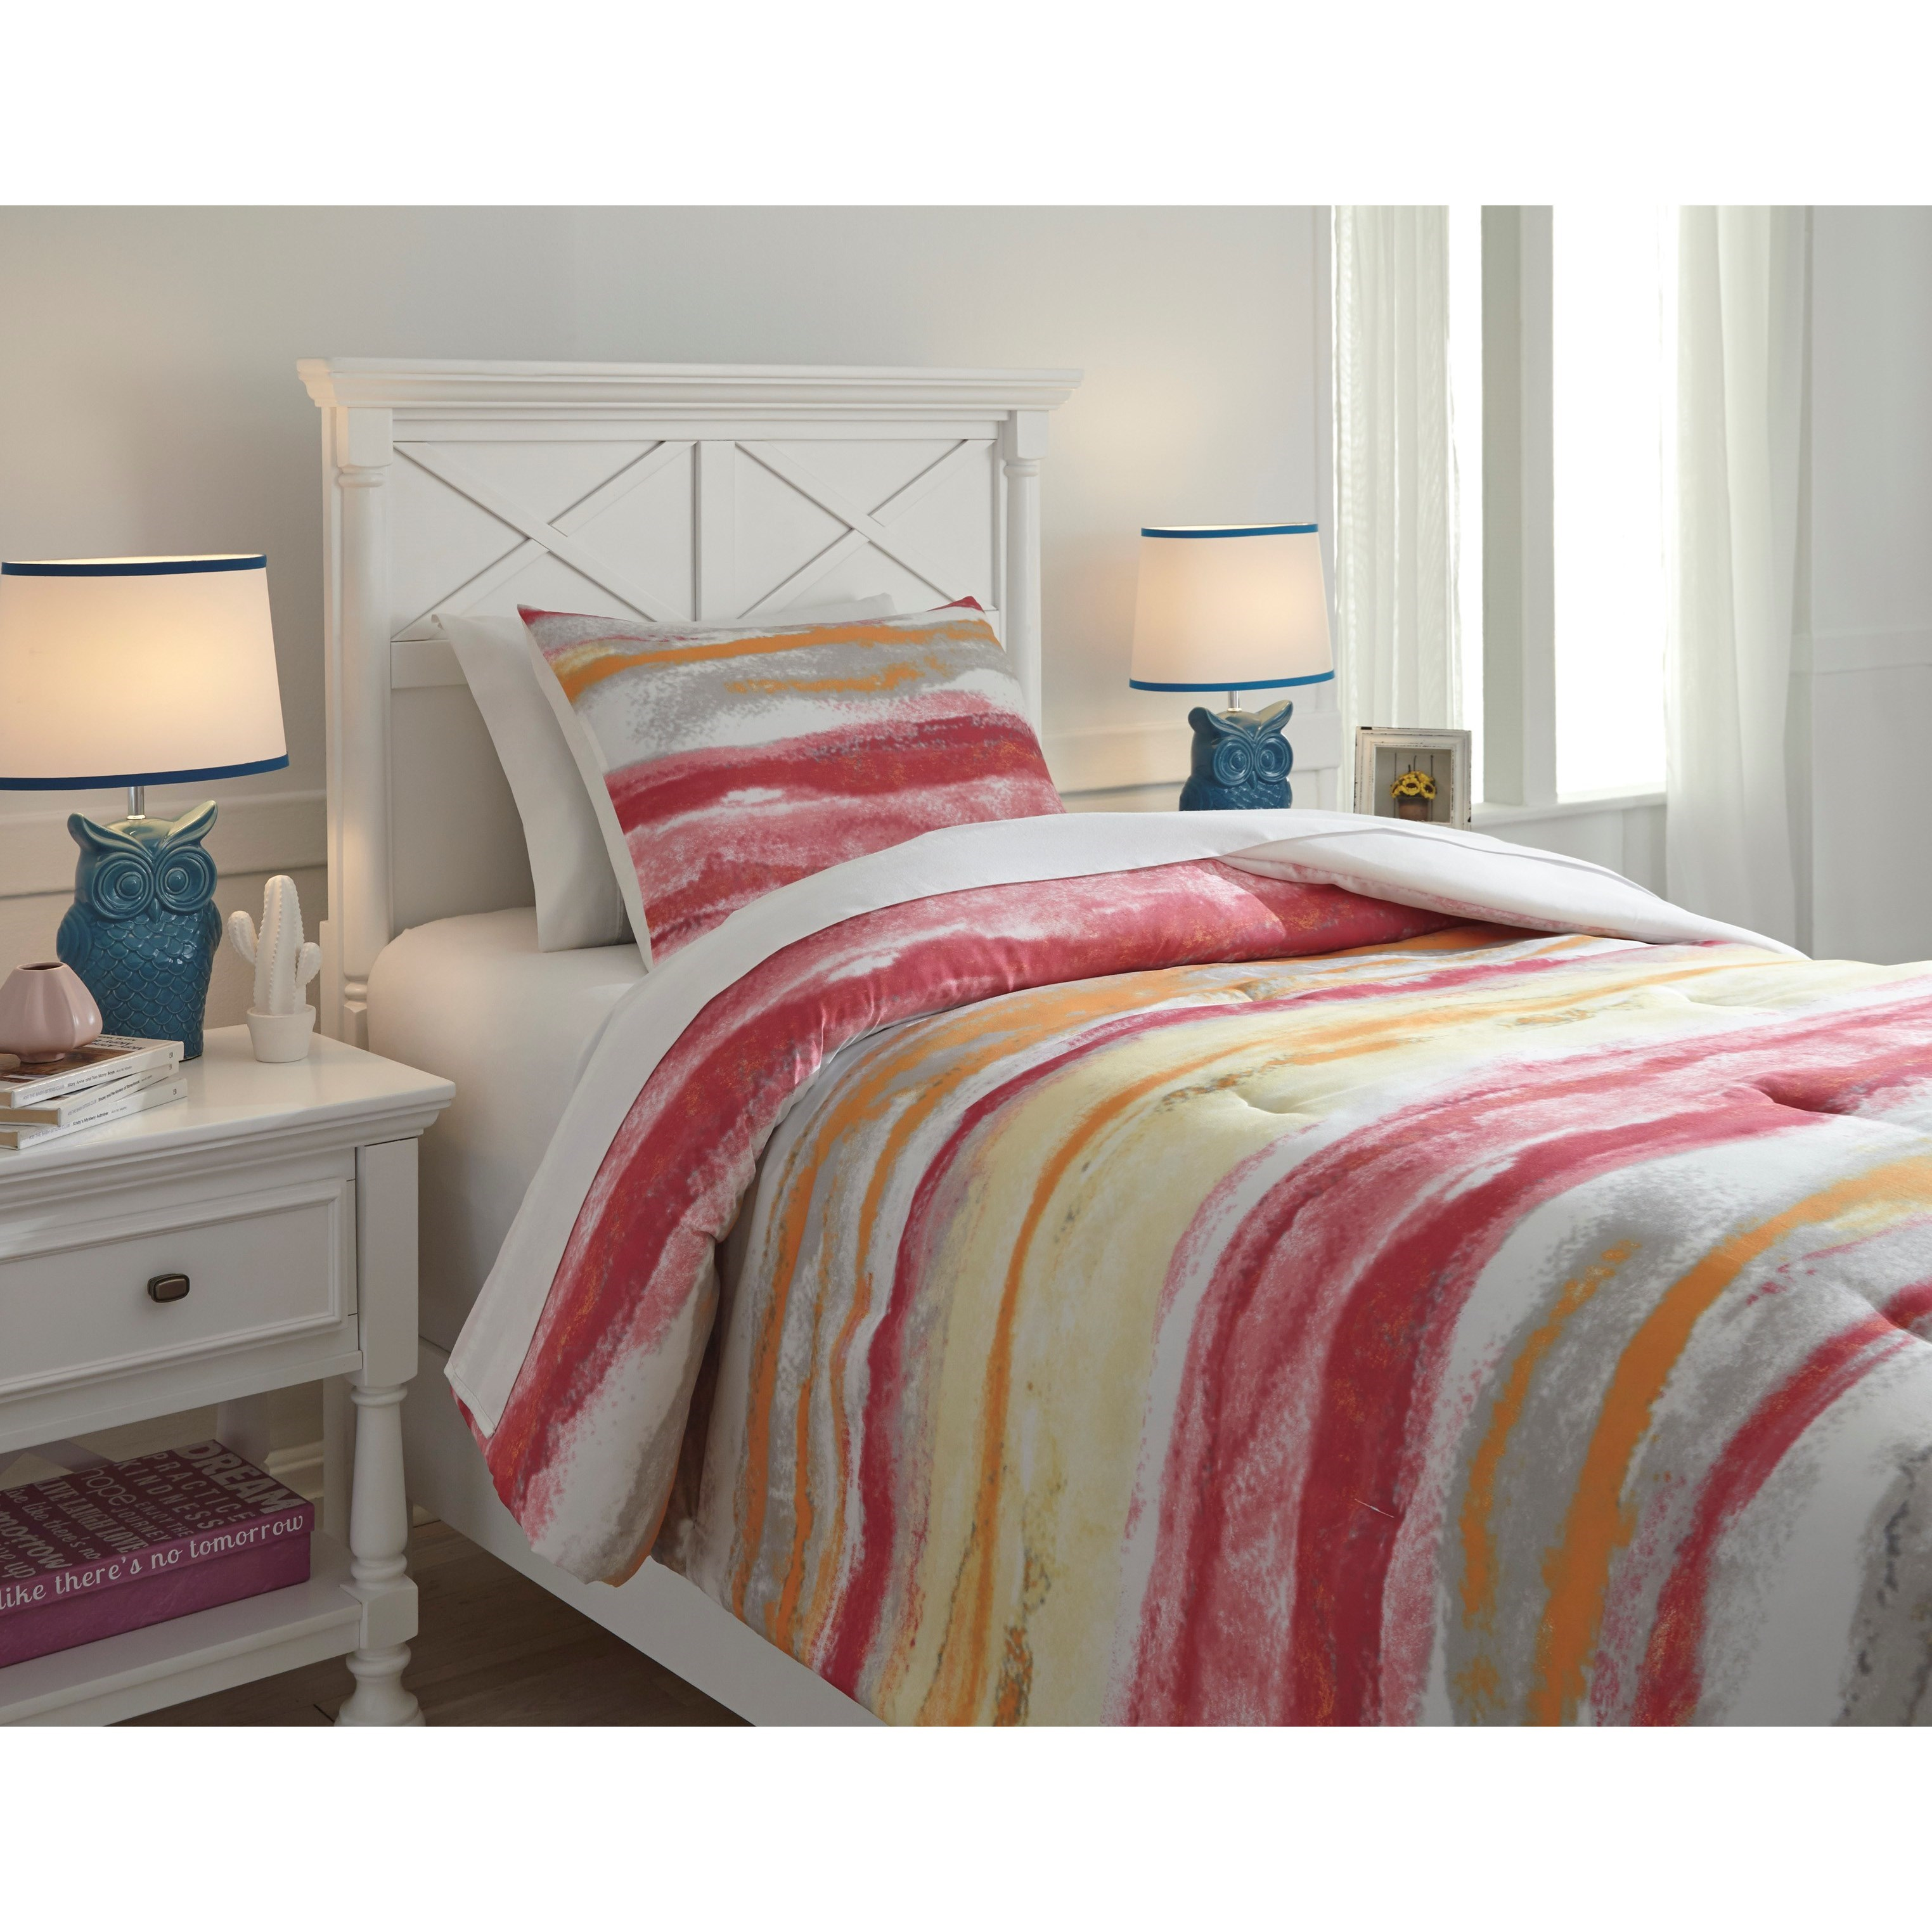 Ashley (Signature Design) Bedding Sets Twin Tammy Pink